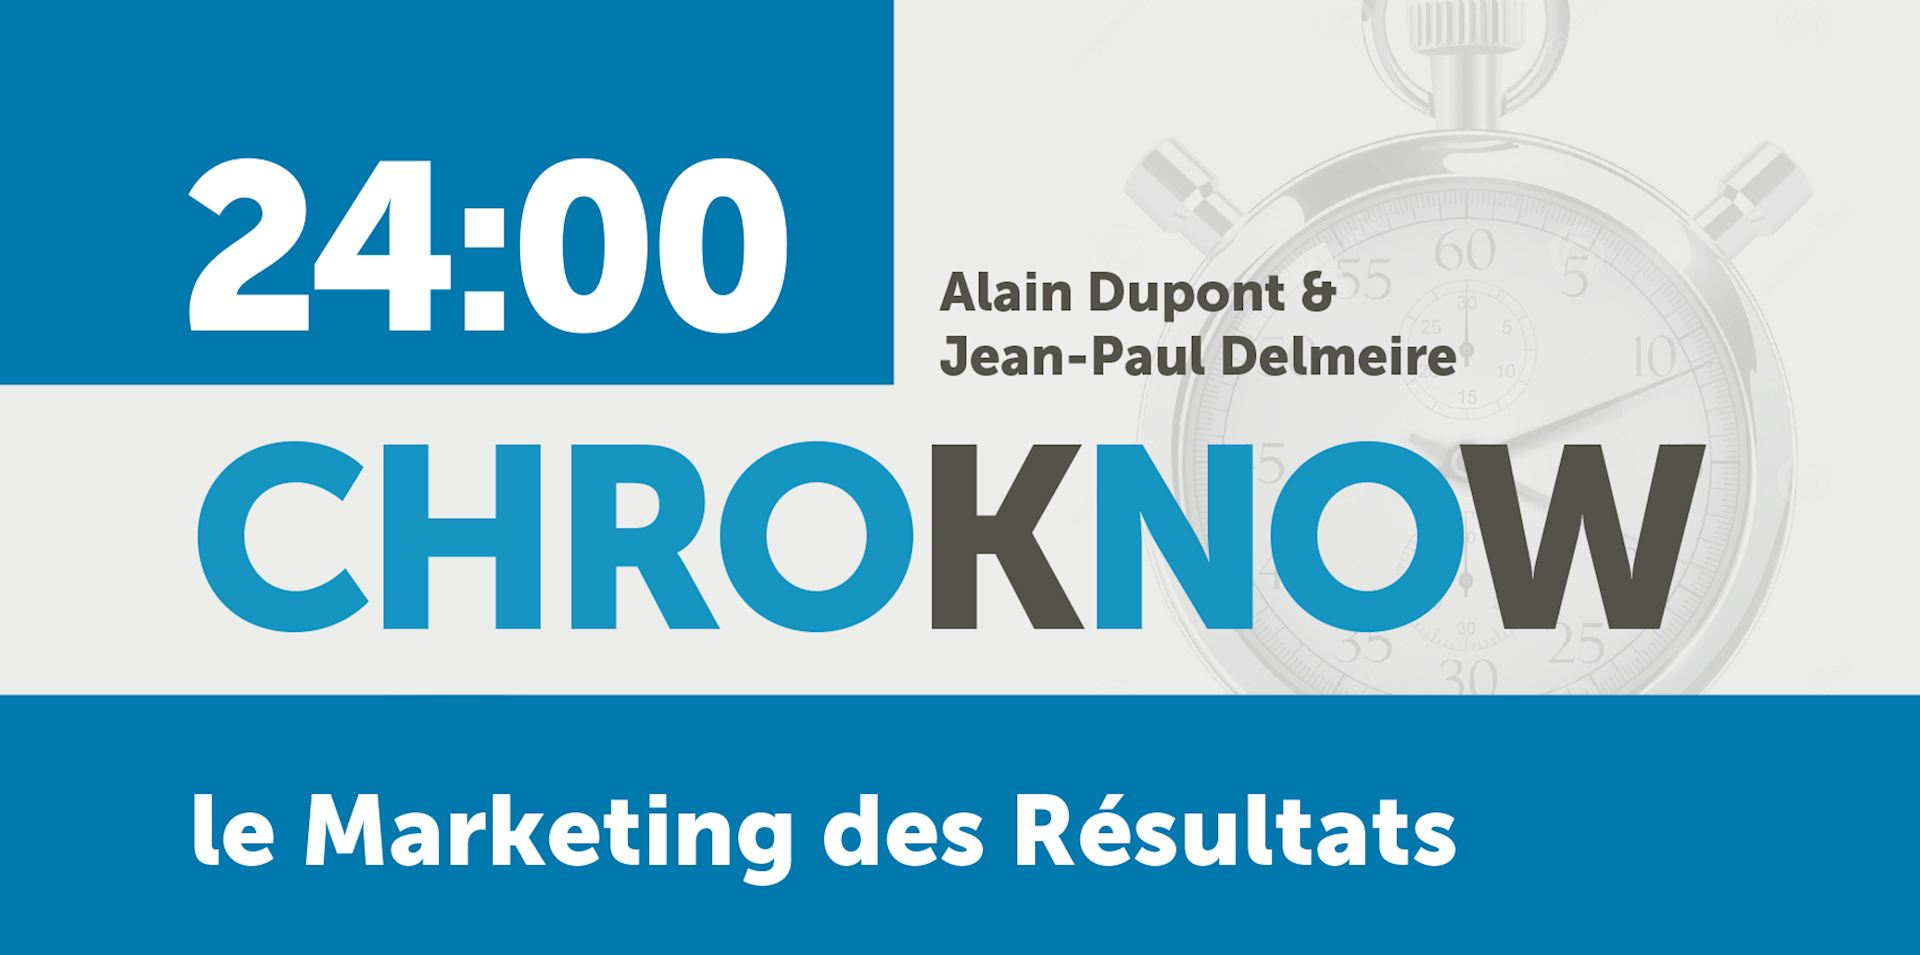 Le Marketing des Résultats